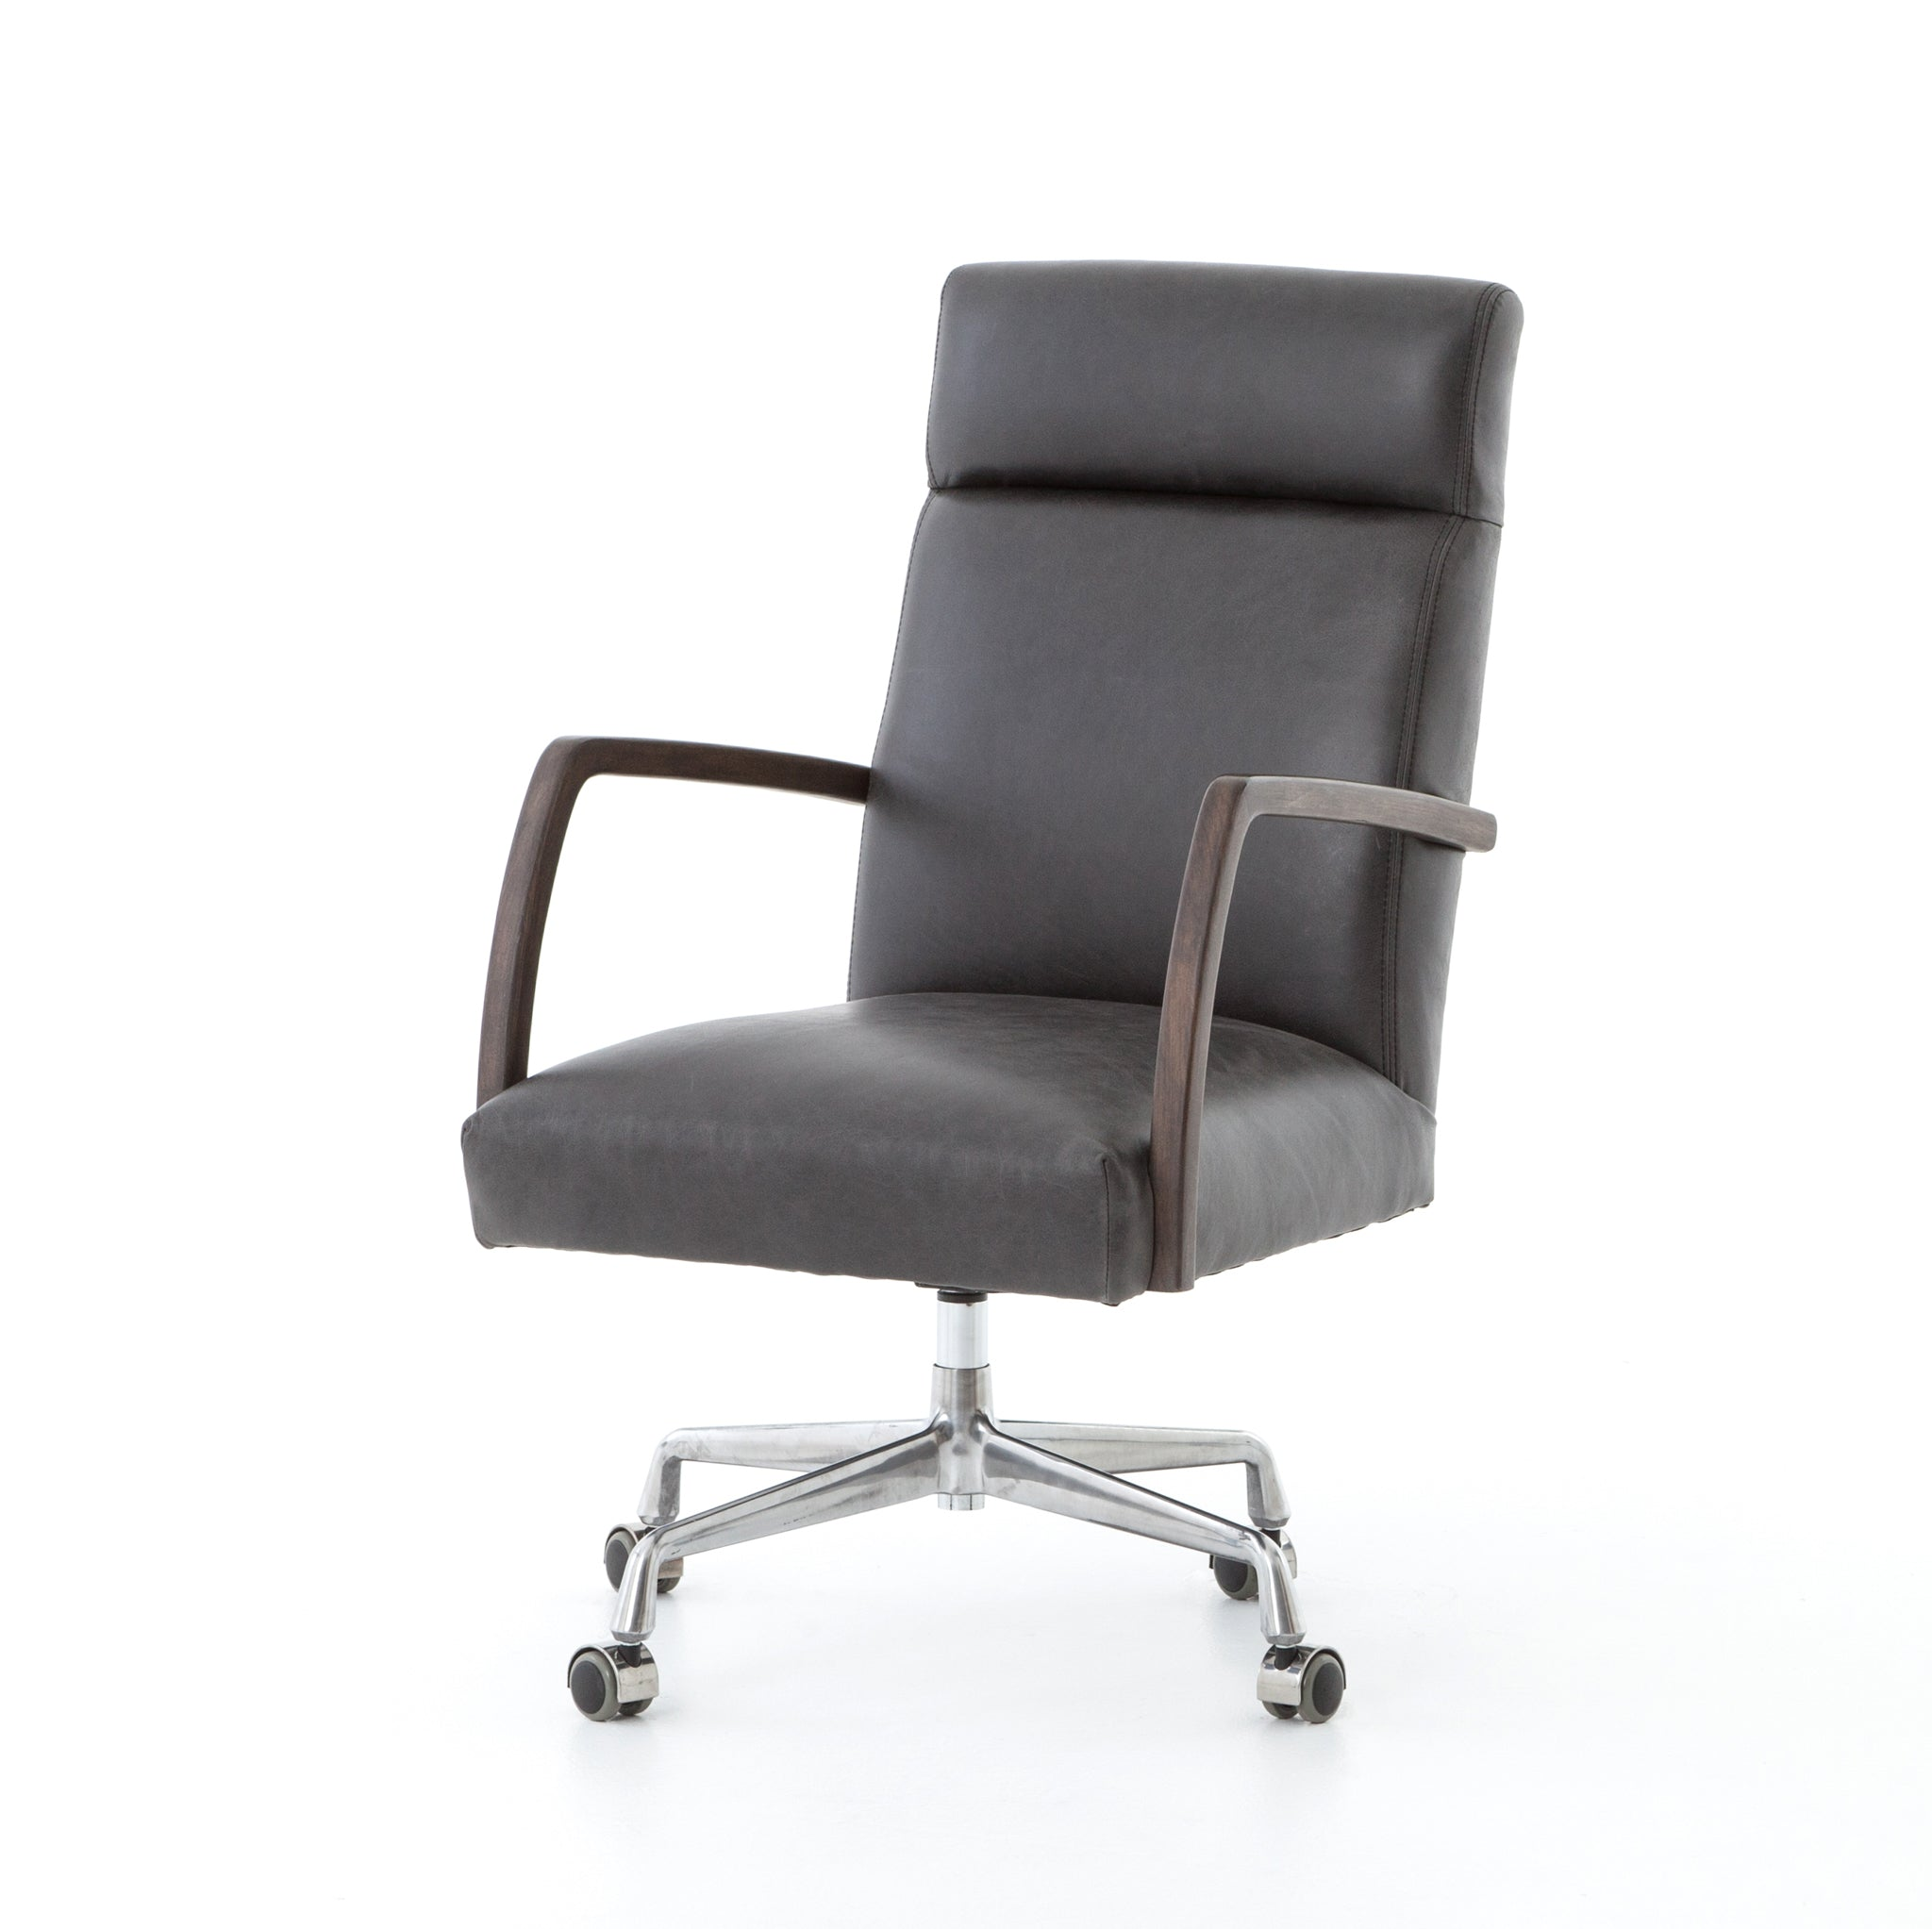 memory chair walmart knee smart designed ip office and chairs star foam canada en work ergonomically with base